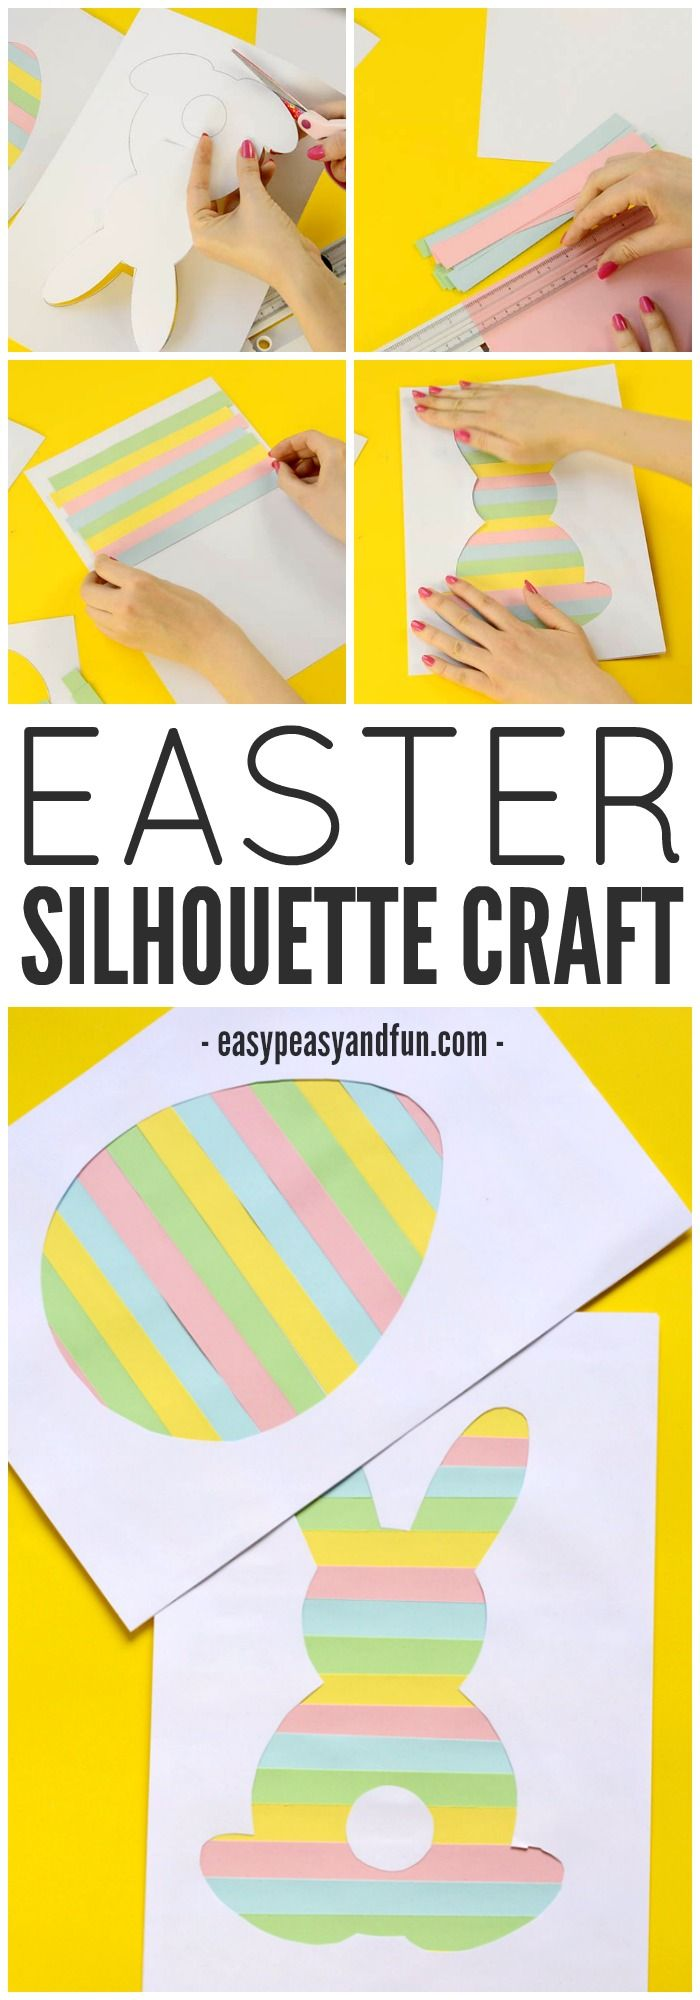 Printable Easter Silhouette Craft